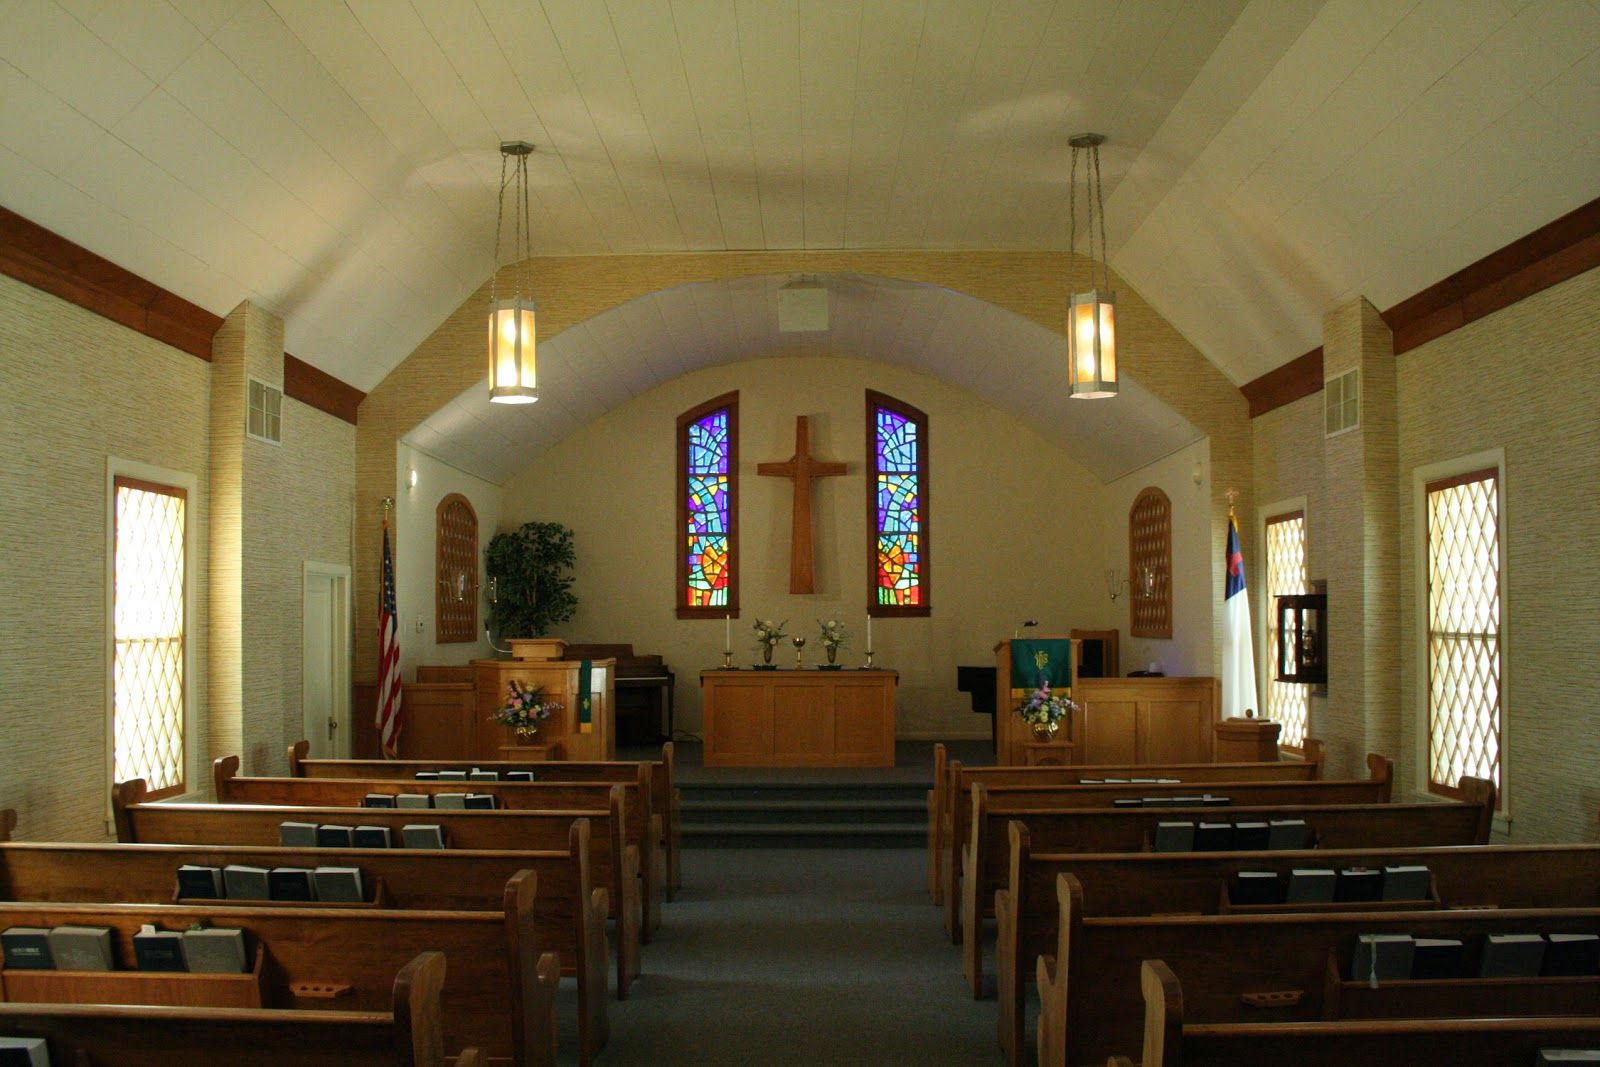 small church interior hope and prayer pinterest